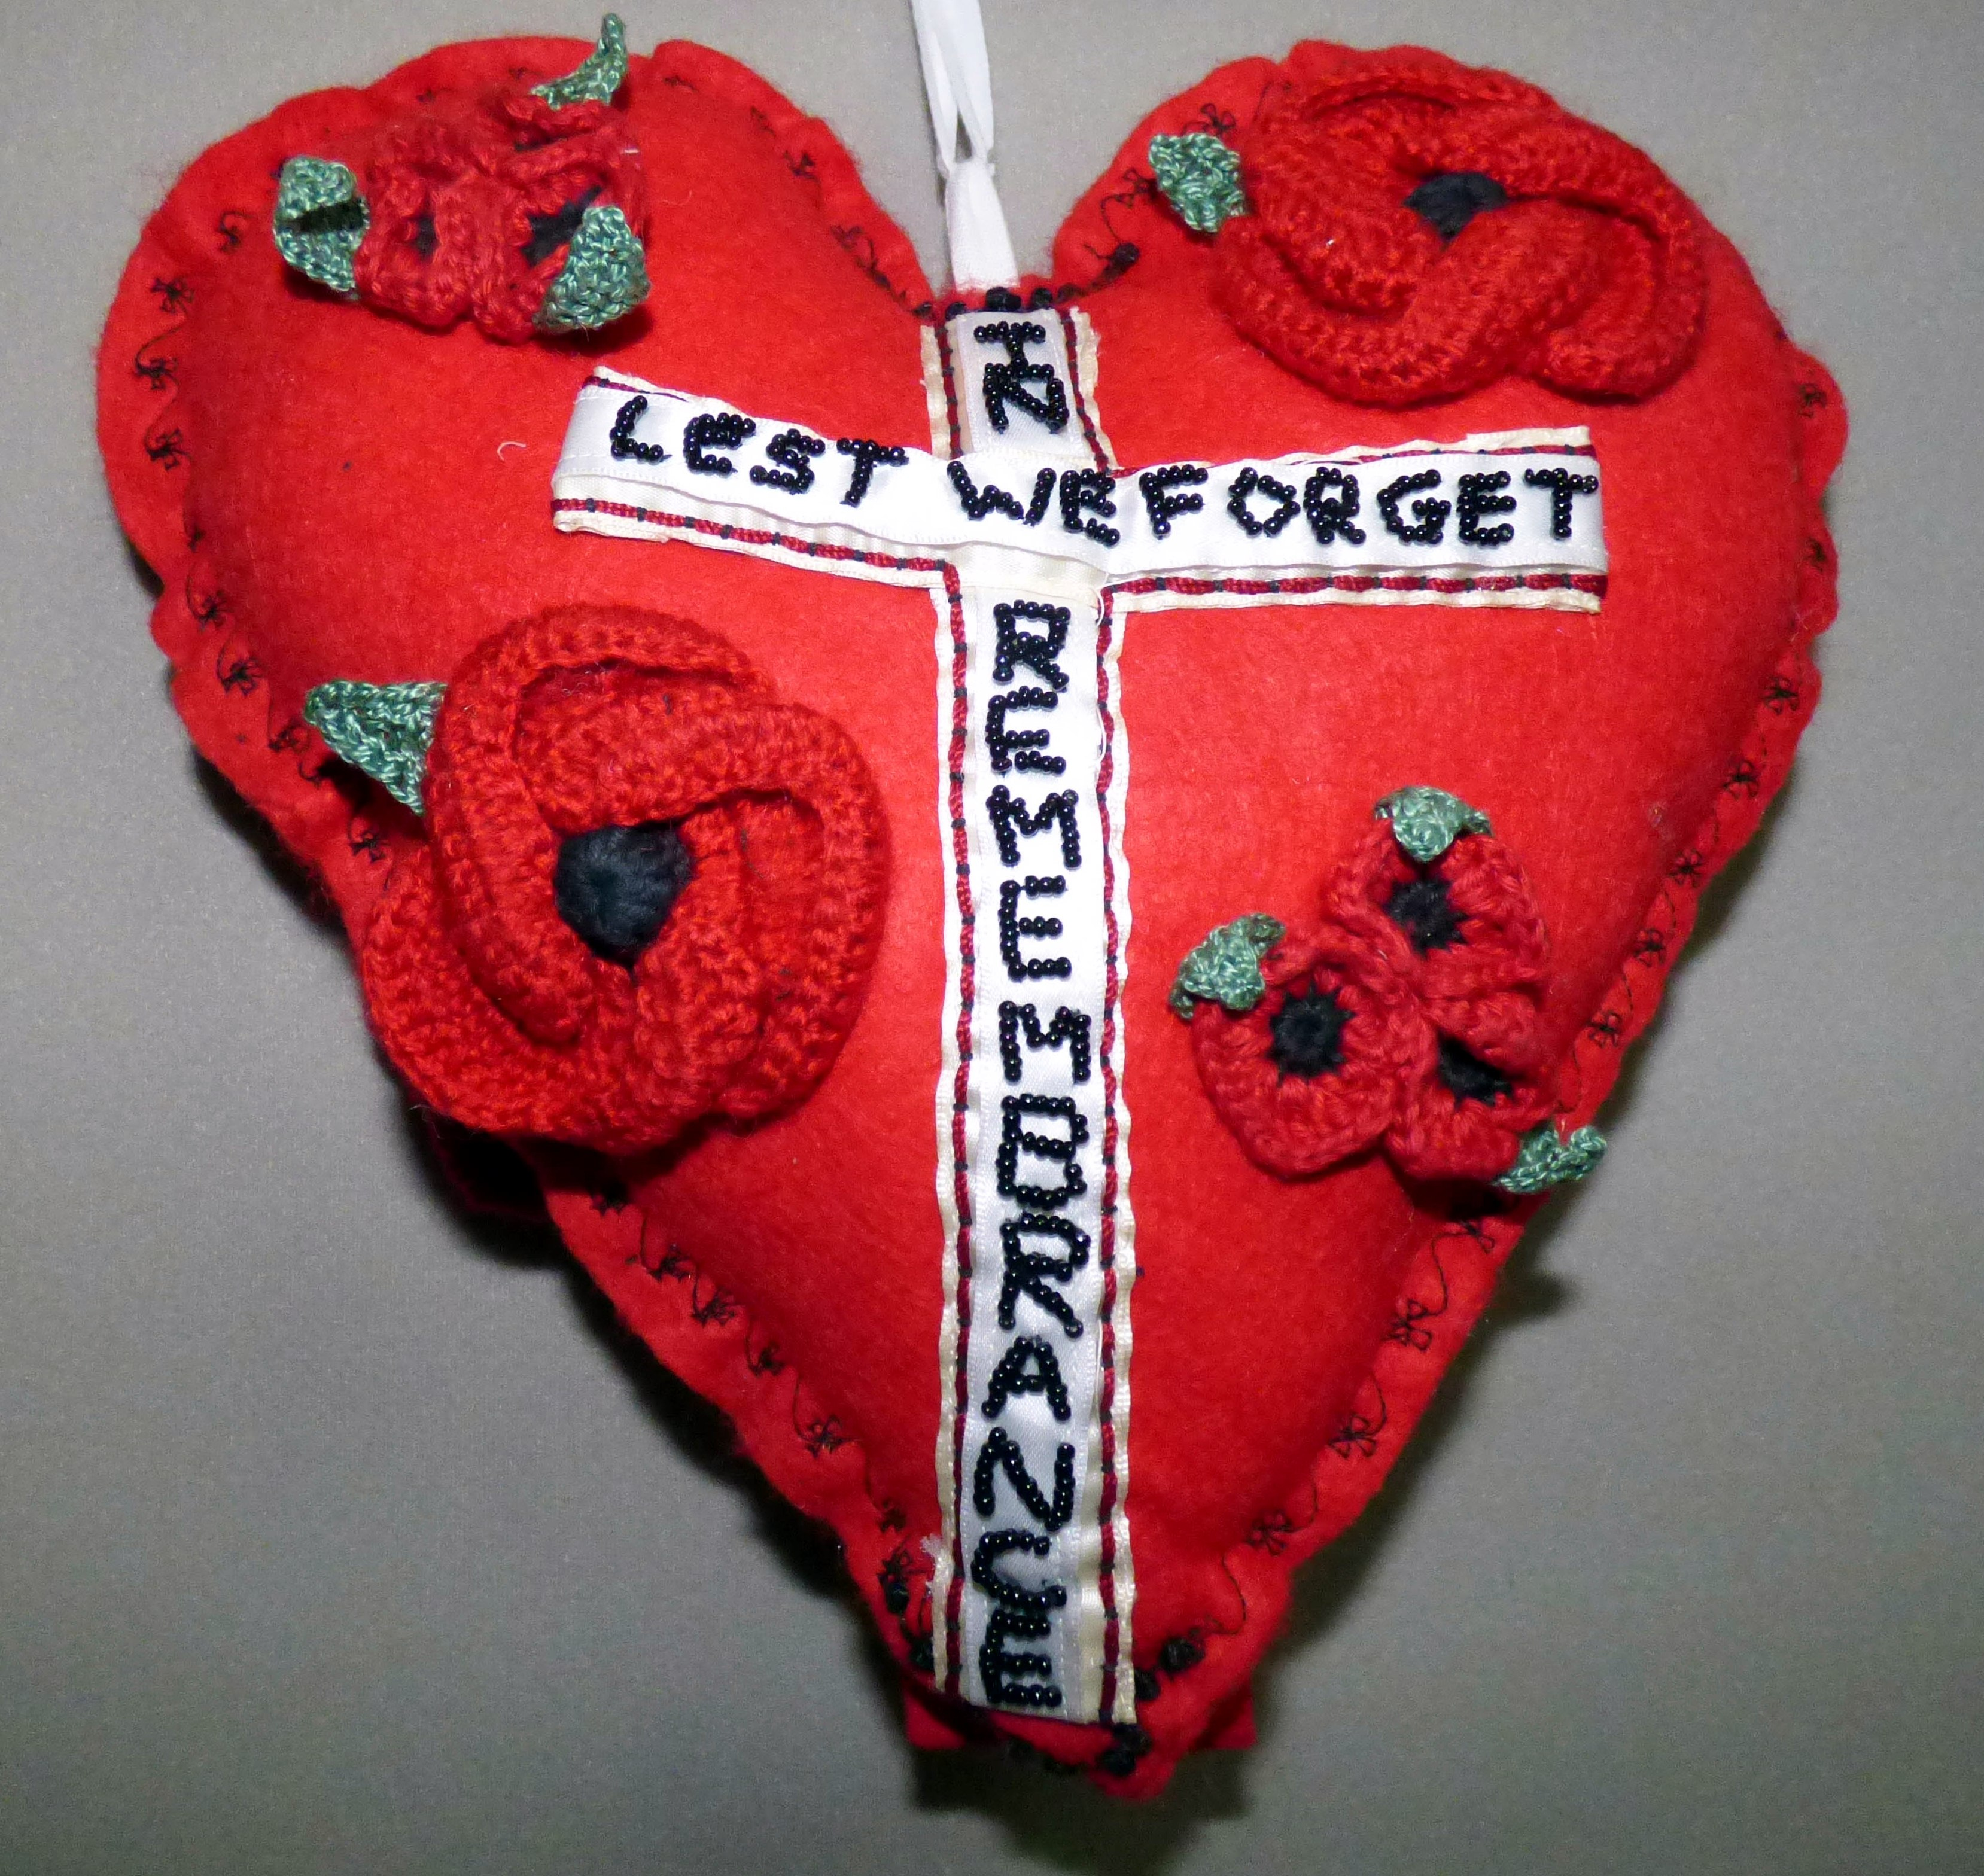 TO REMEMBER WORLD WAR 1914 -18 by Lorraine Barker, in memory of all those under-age who signed up, 100 Hearts exhibition, Liverpool Cathedral, Sept 2018